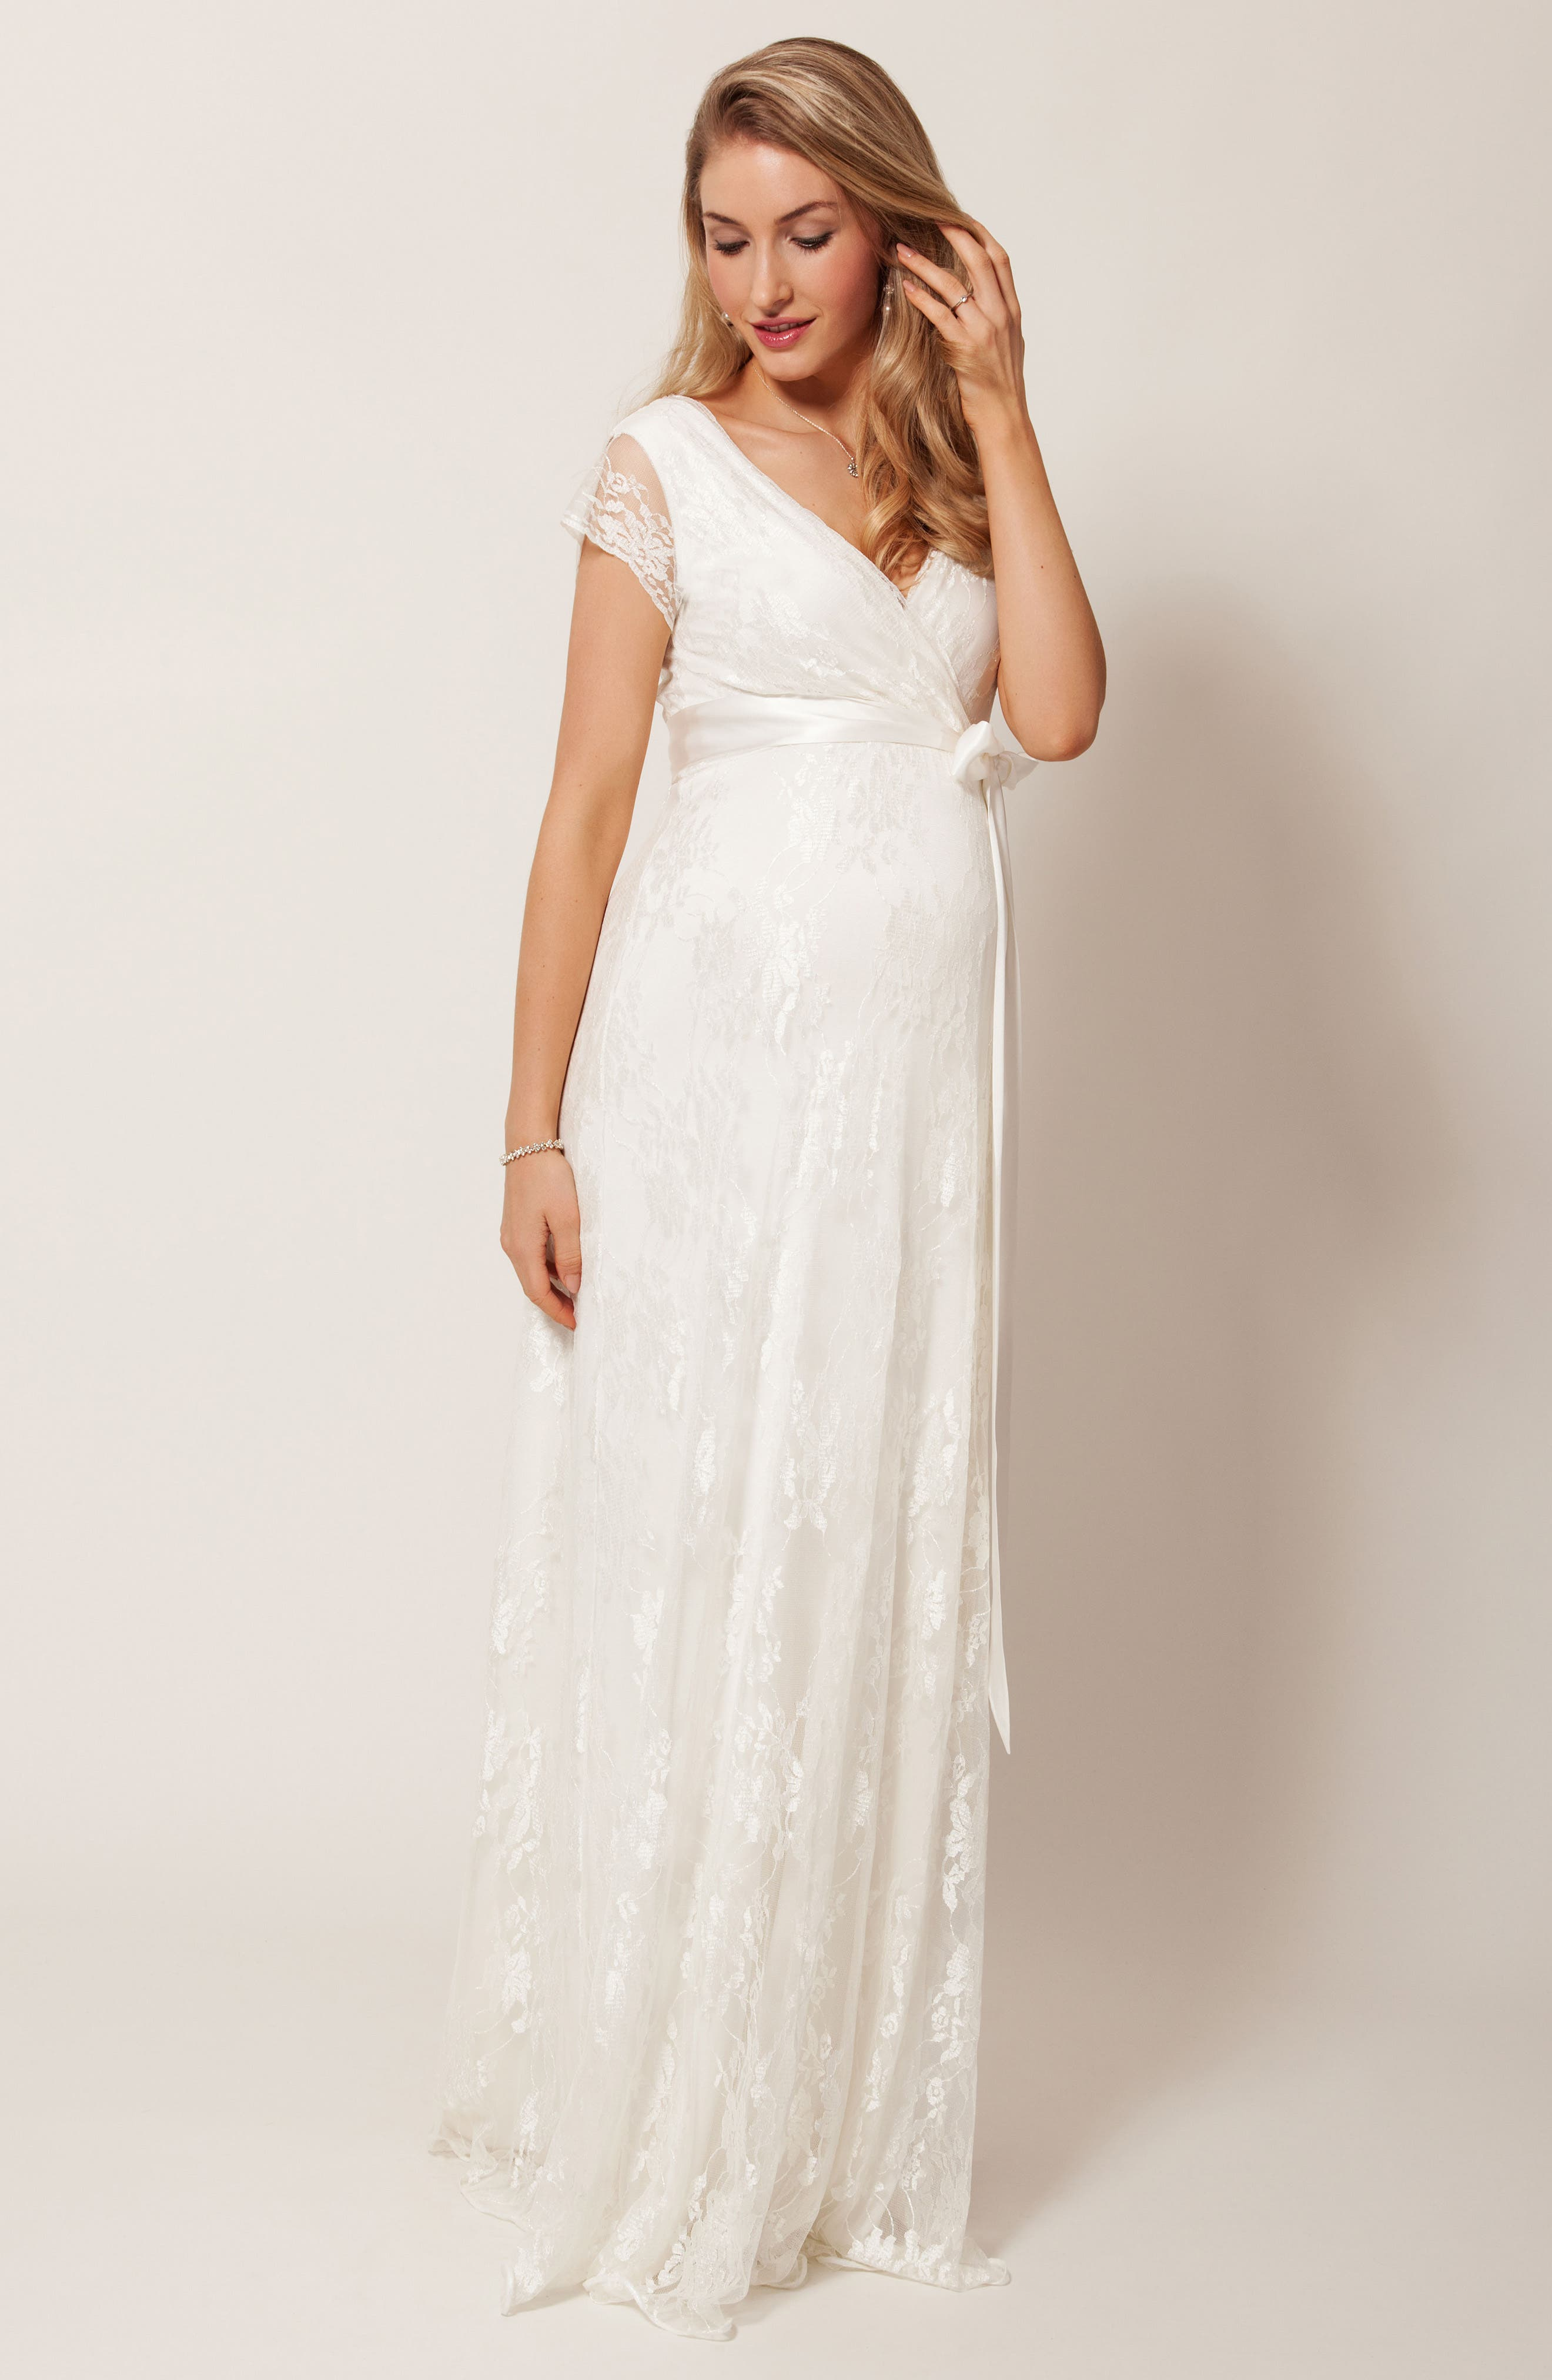 Eden Lace Maternity Gown,                             Alternate thumbnail 8, color,                             IVORY DREAM